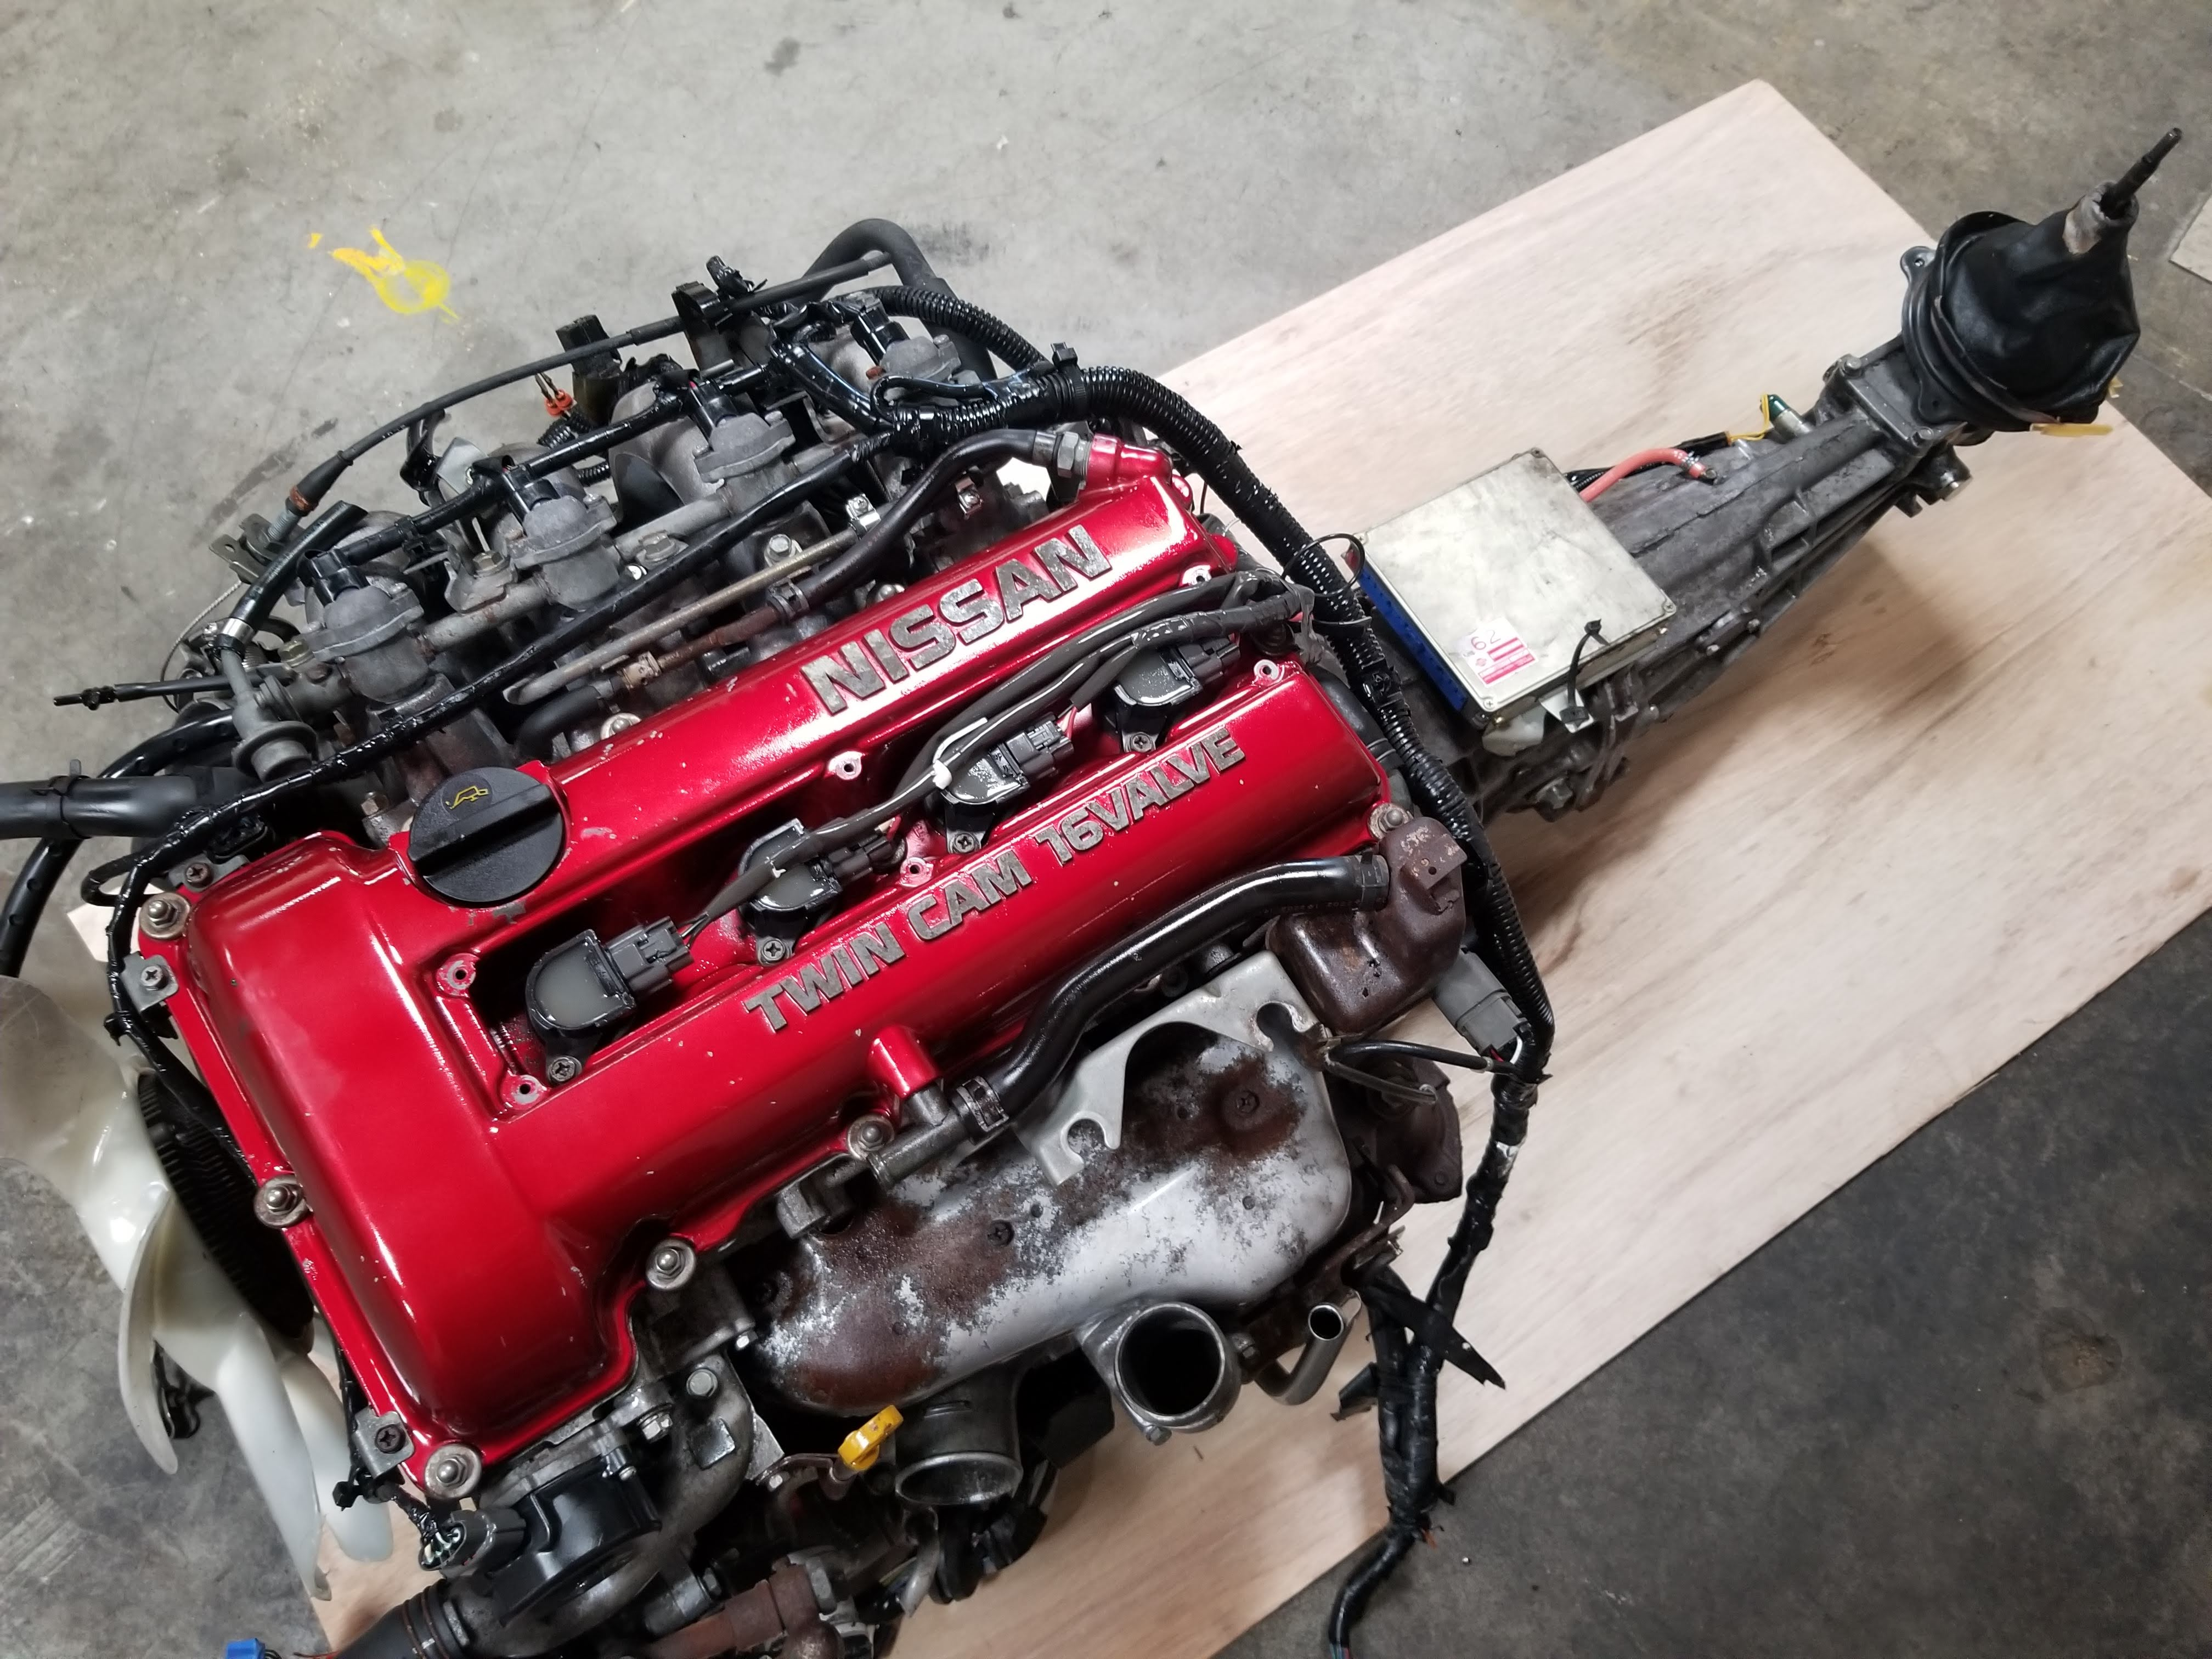 Sr20det S13 Red Top 2 0l Turbo Engine With 5